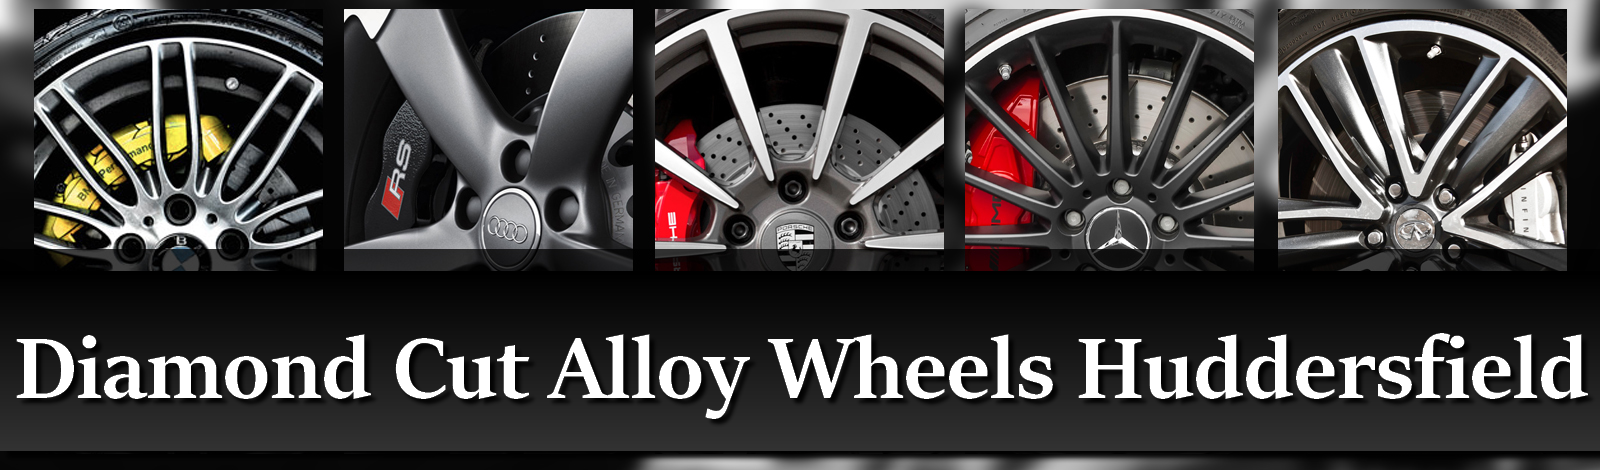 Diamond Cut Alloy Wheels Huddersfield